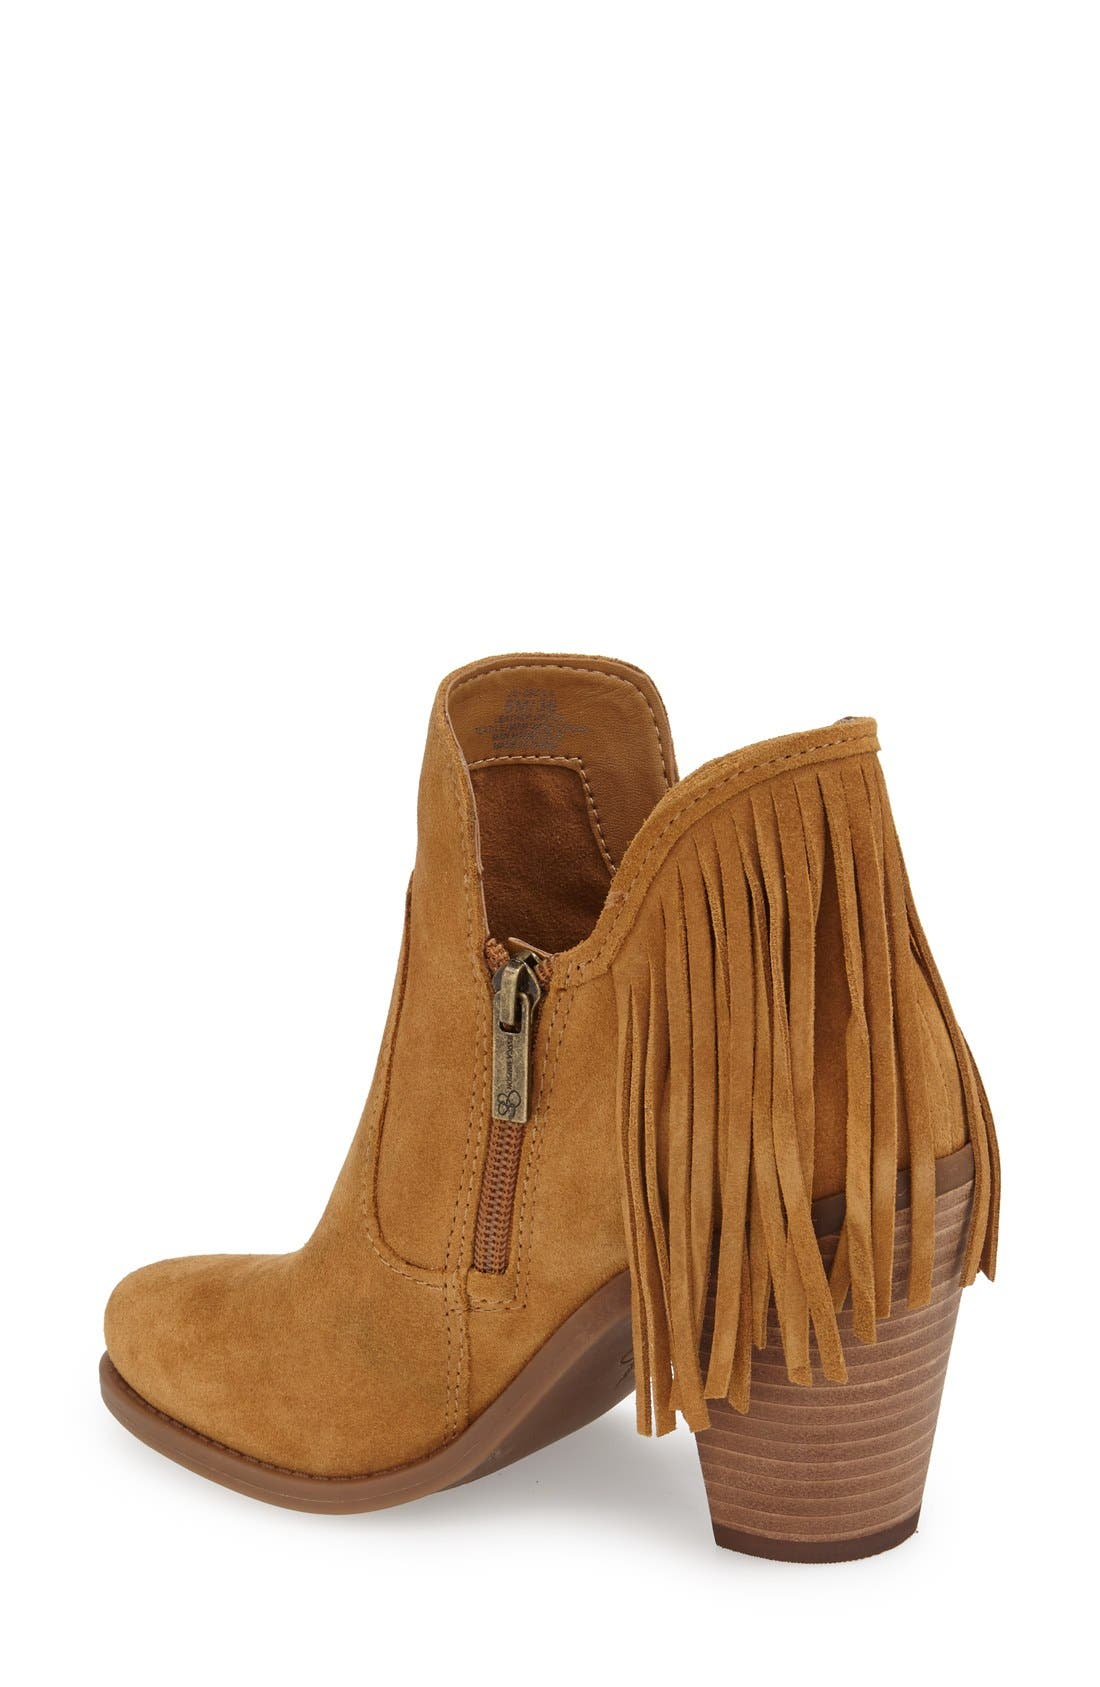 'Cecila' Fringe Bootie,                             Alternate thumbnail 2, color,                             201